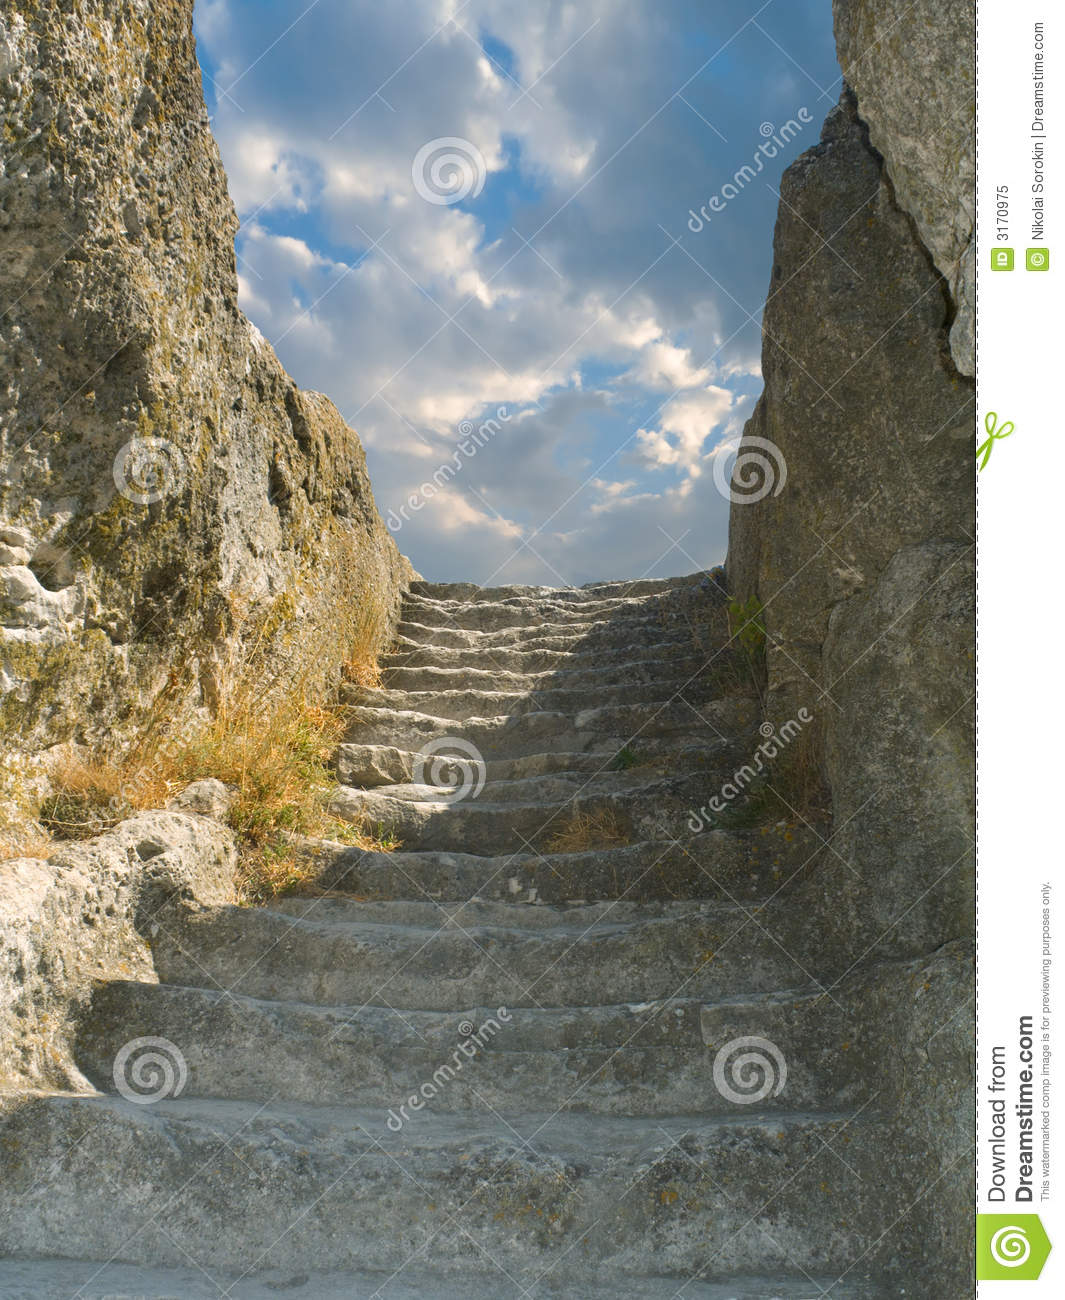 Old stone staircase to sky